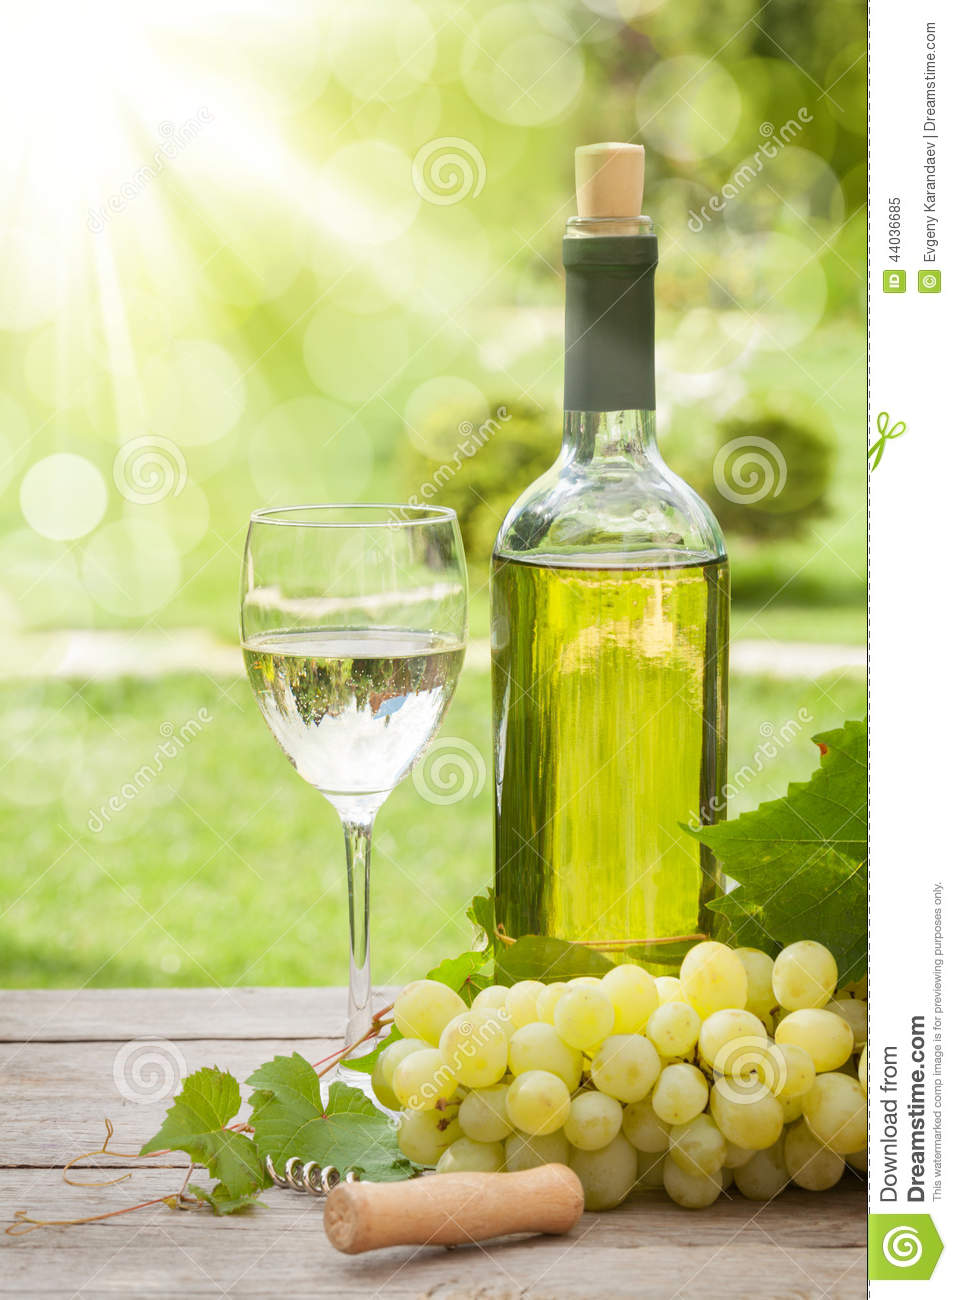 verre et bouteille de vin blanc avec le groupe de raisins photo stock image 44036685. Black Bedroom Furniture Sets. Home Design Ideas